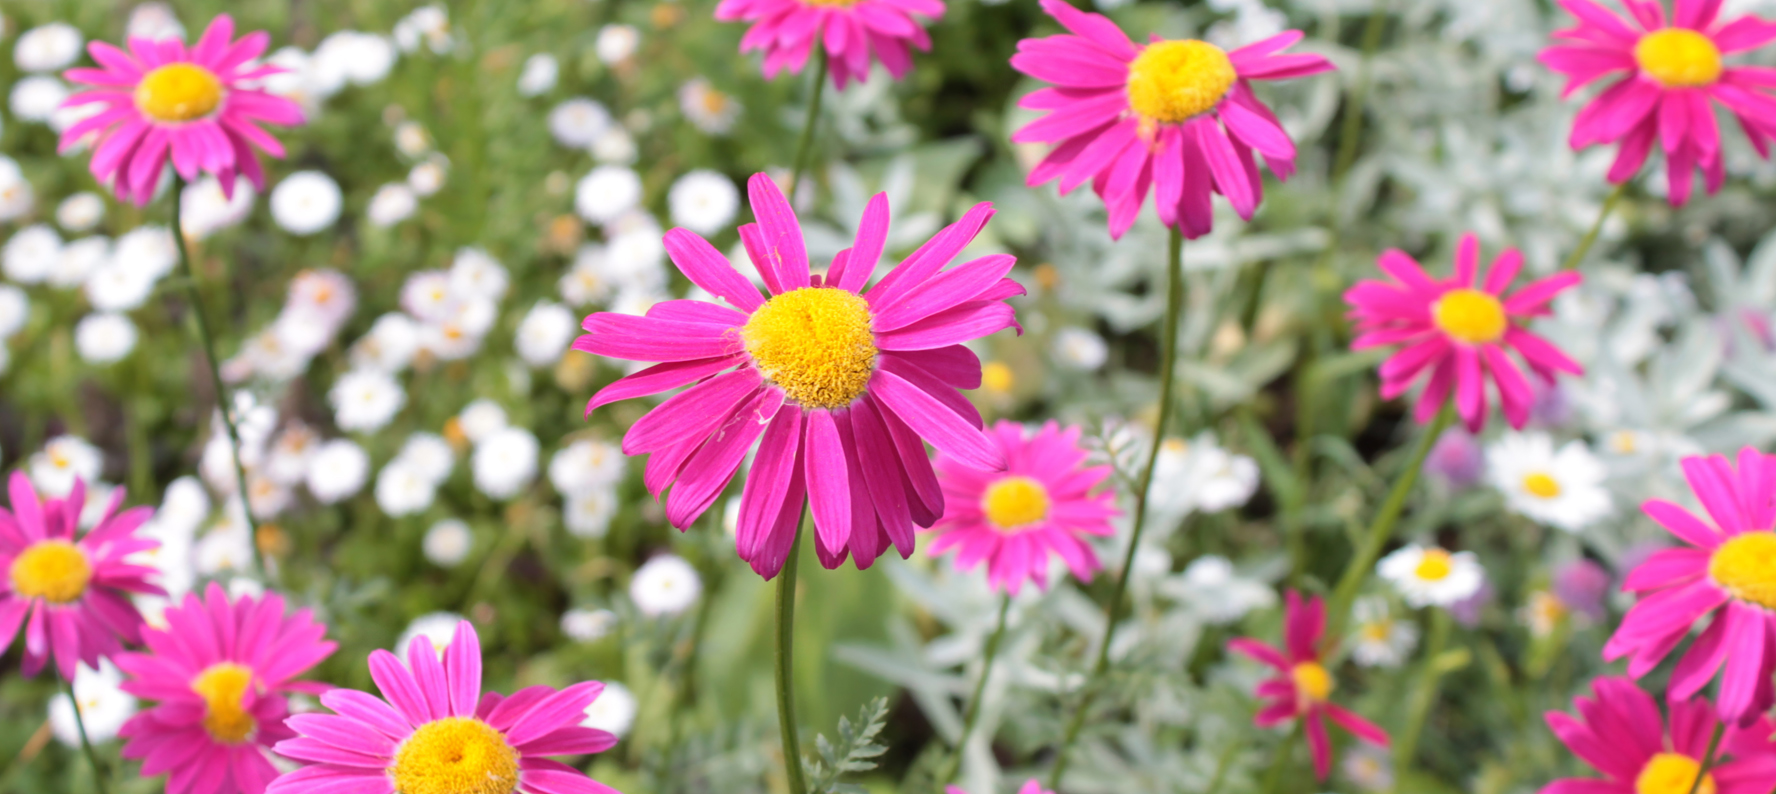 Anacyclus pyrethrum uses in natural skin care products.